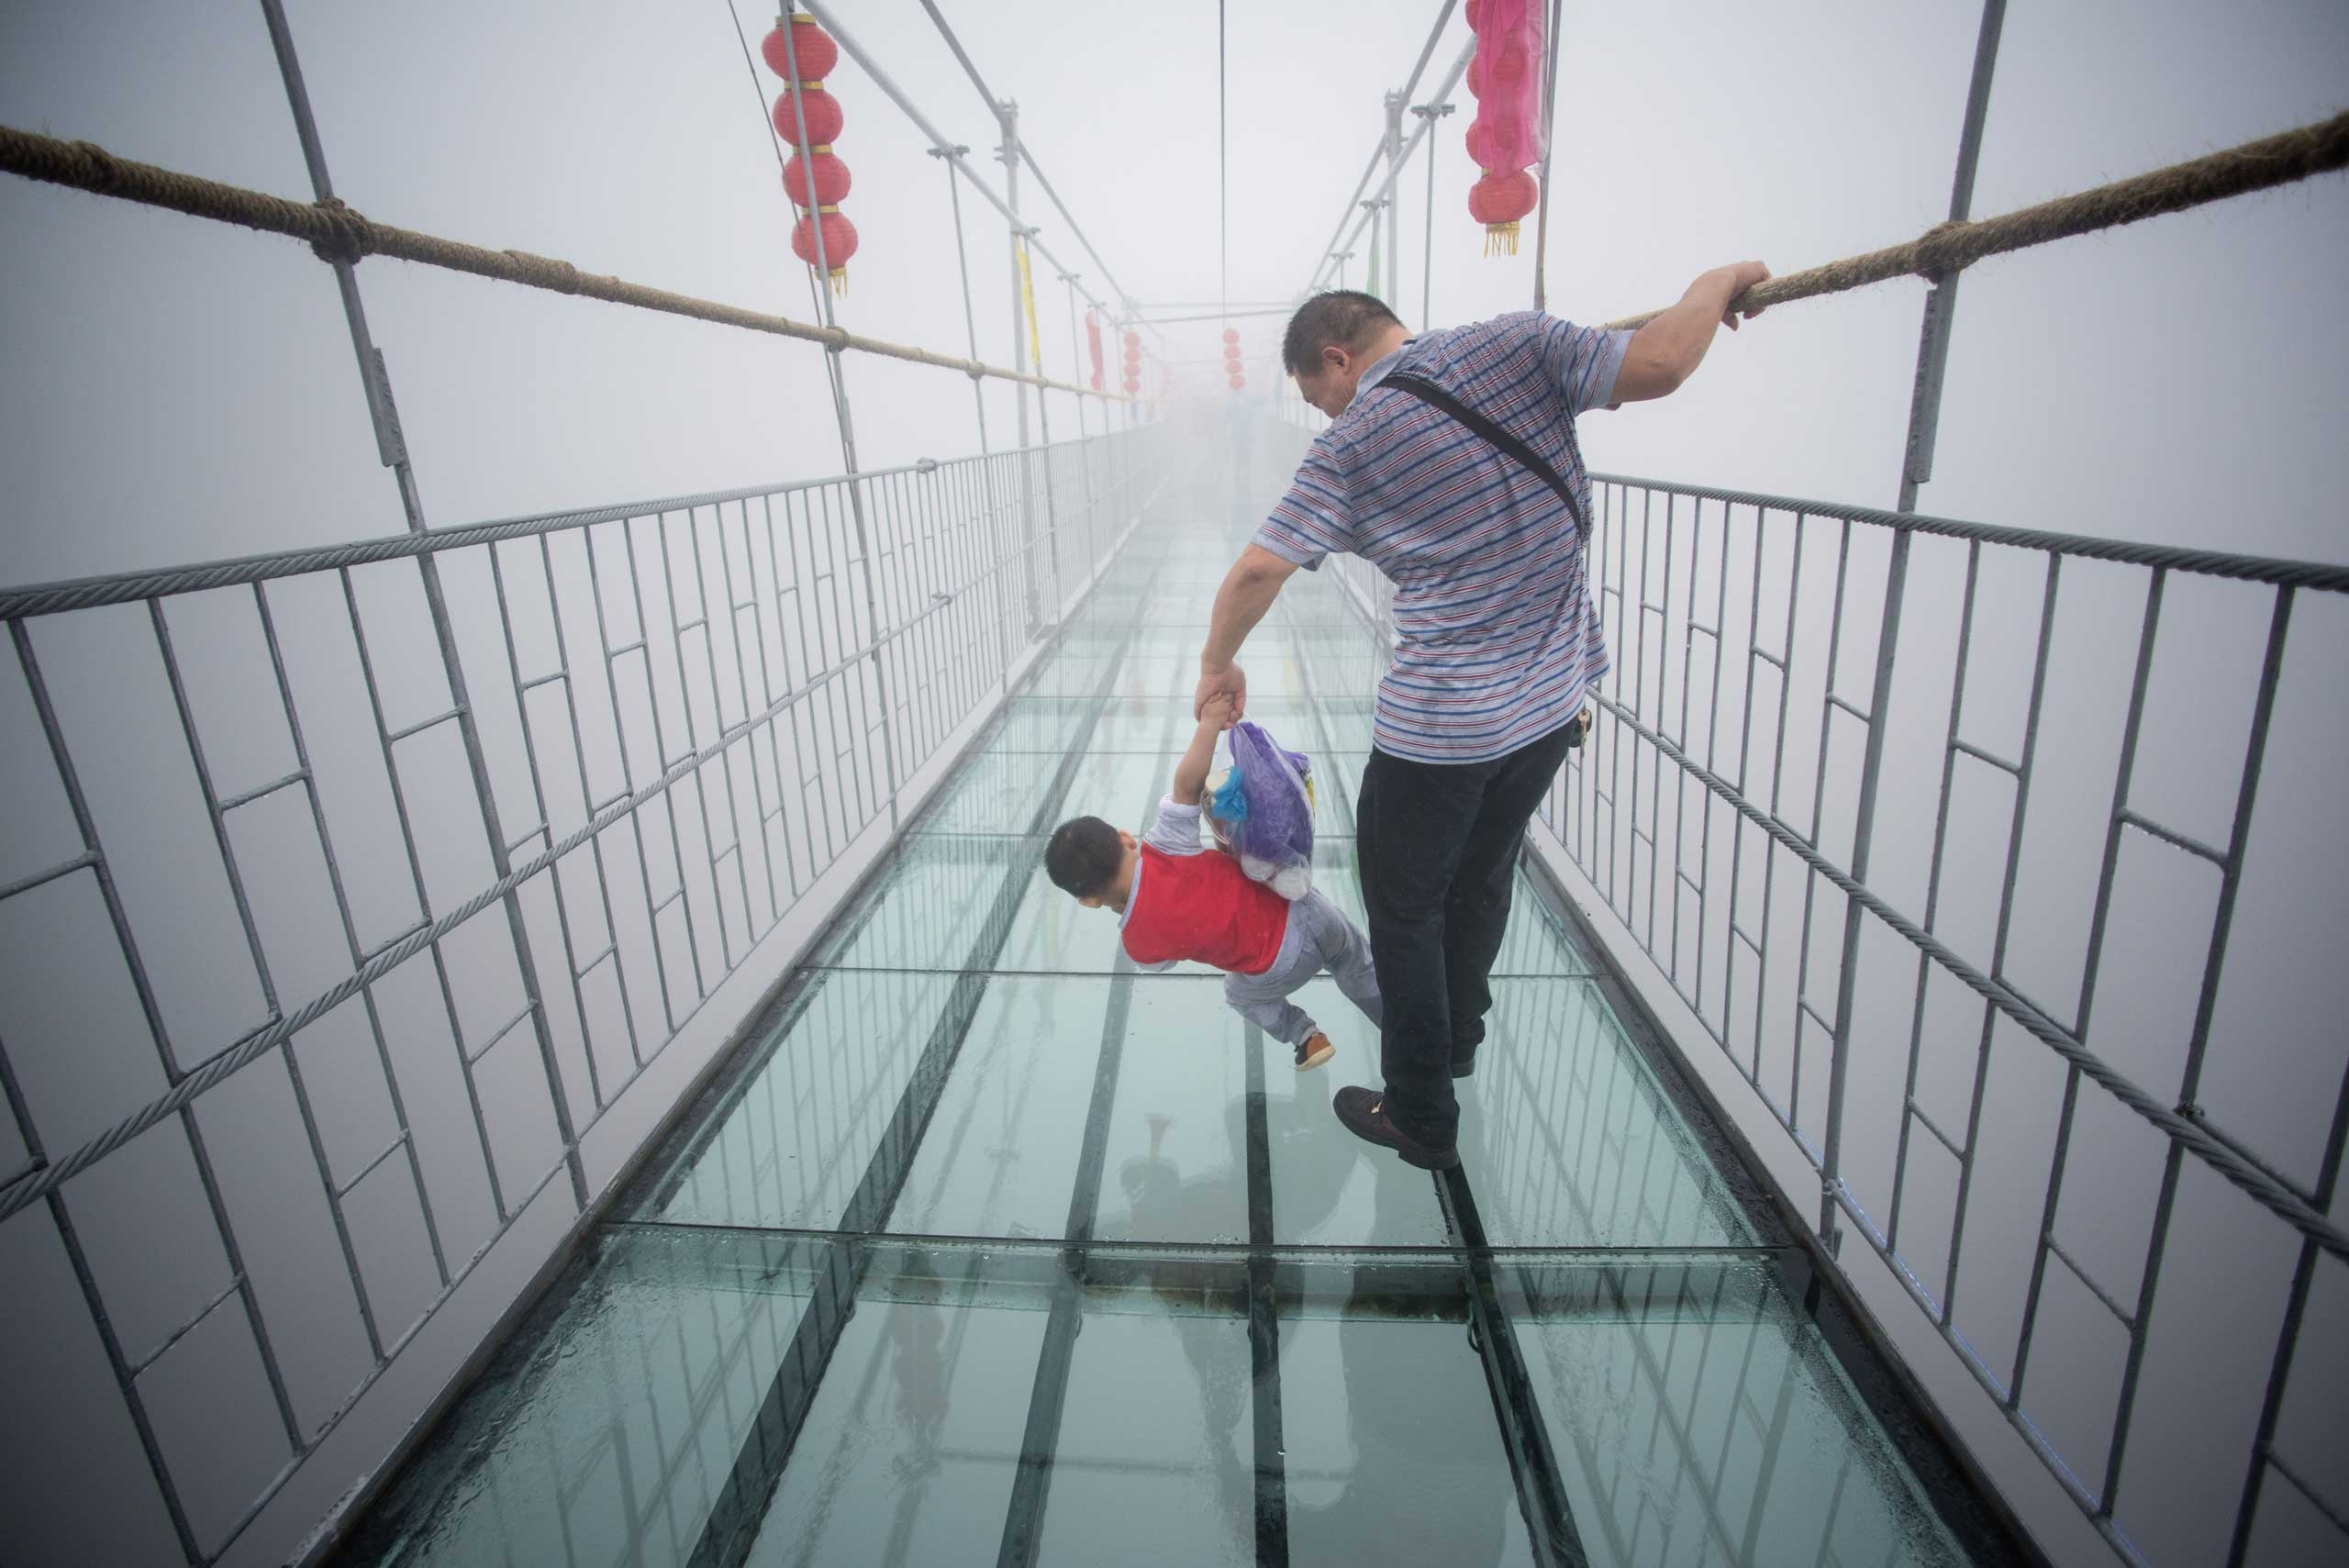 A Chinese tourist holds onto his son as they walk across a glass-bottomed suspension bridge in the Shinuizhai mountains in Pingjang county, Hunan province some 150 kilometers from Changsha on Oct. 7, 2015.